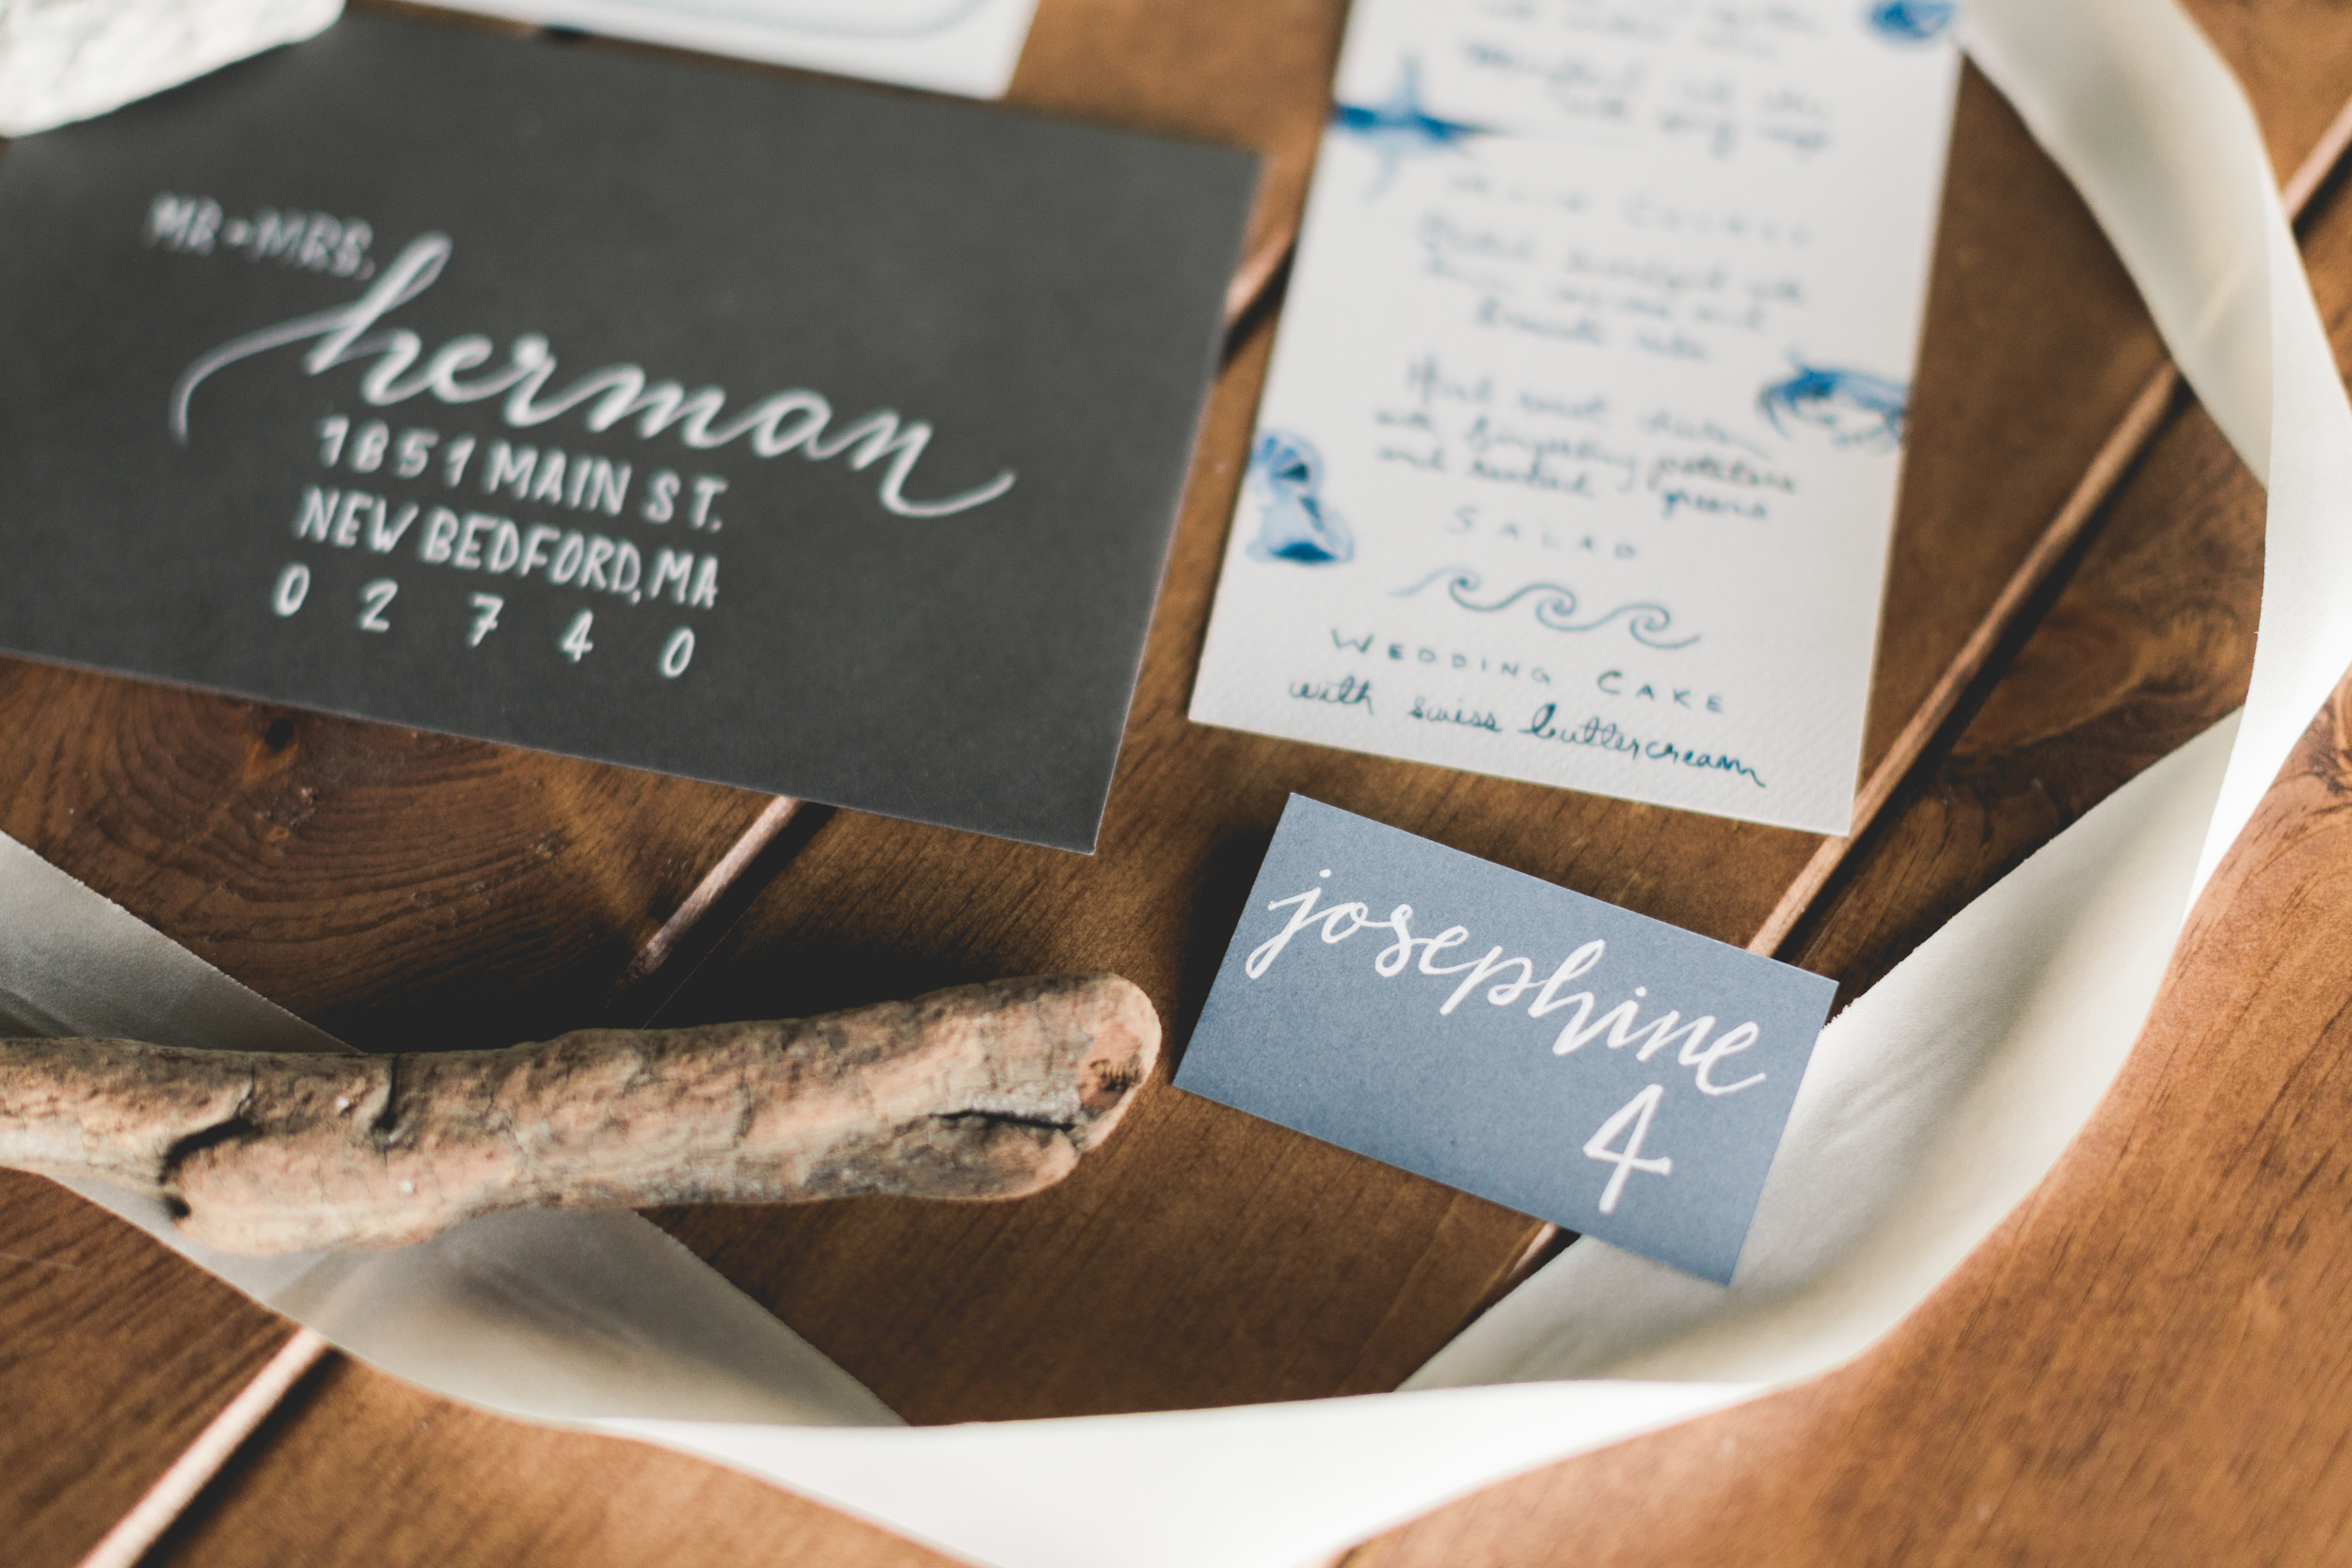 Whaling_Museum_Styled_Shoot_papergoods_4-19-16-11.jpg